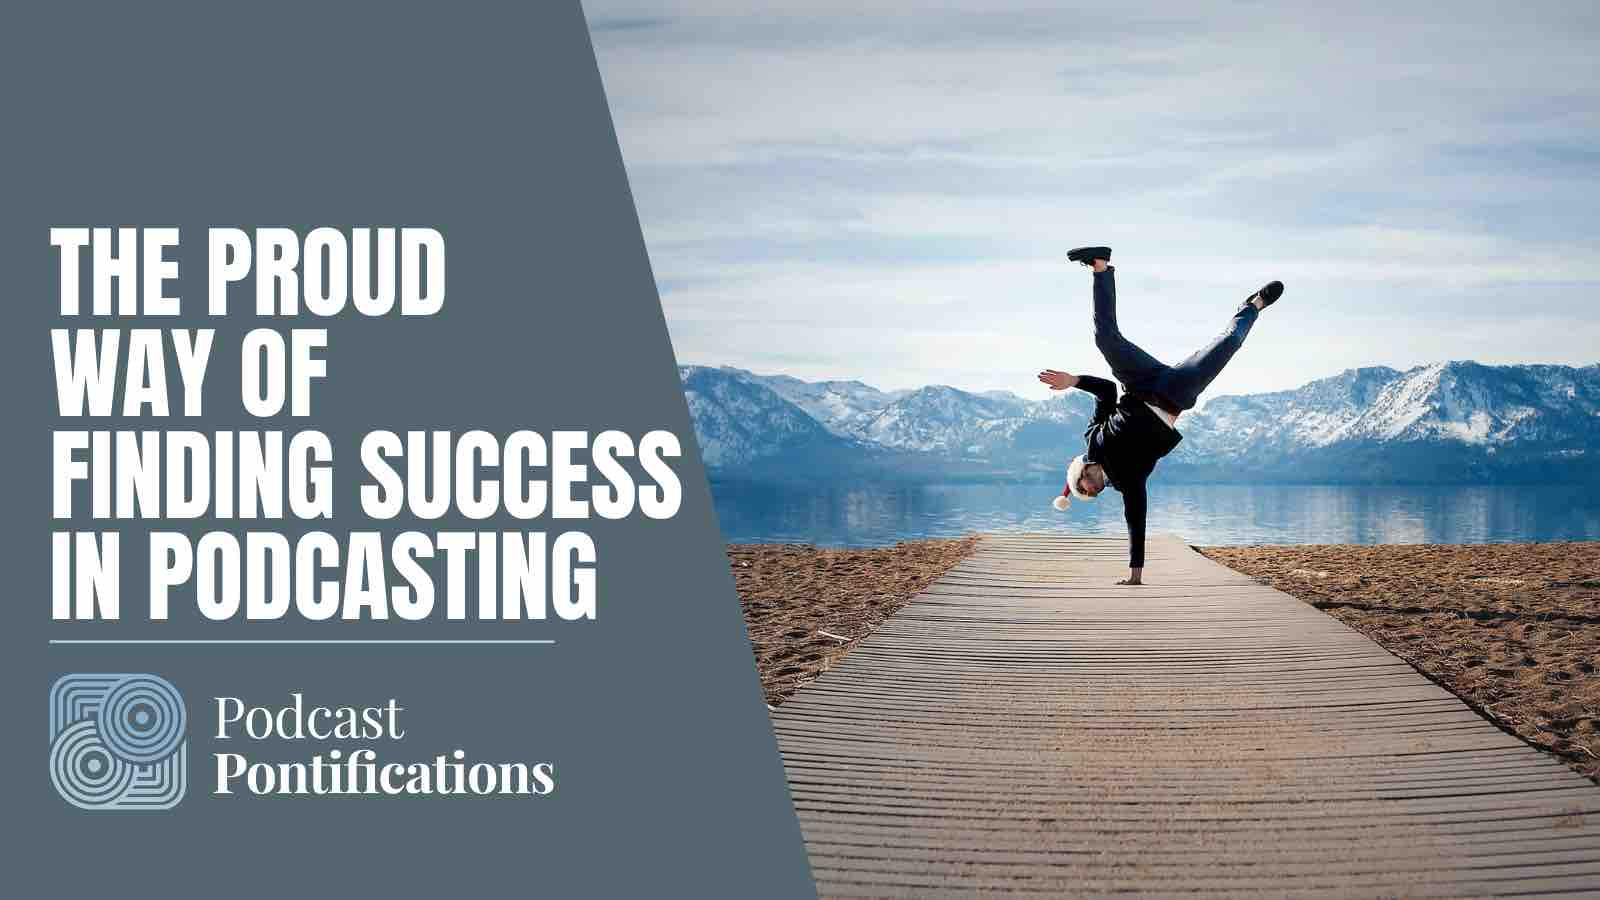 The Proud Way Of Finding Success In Podcasting